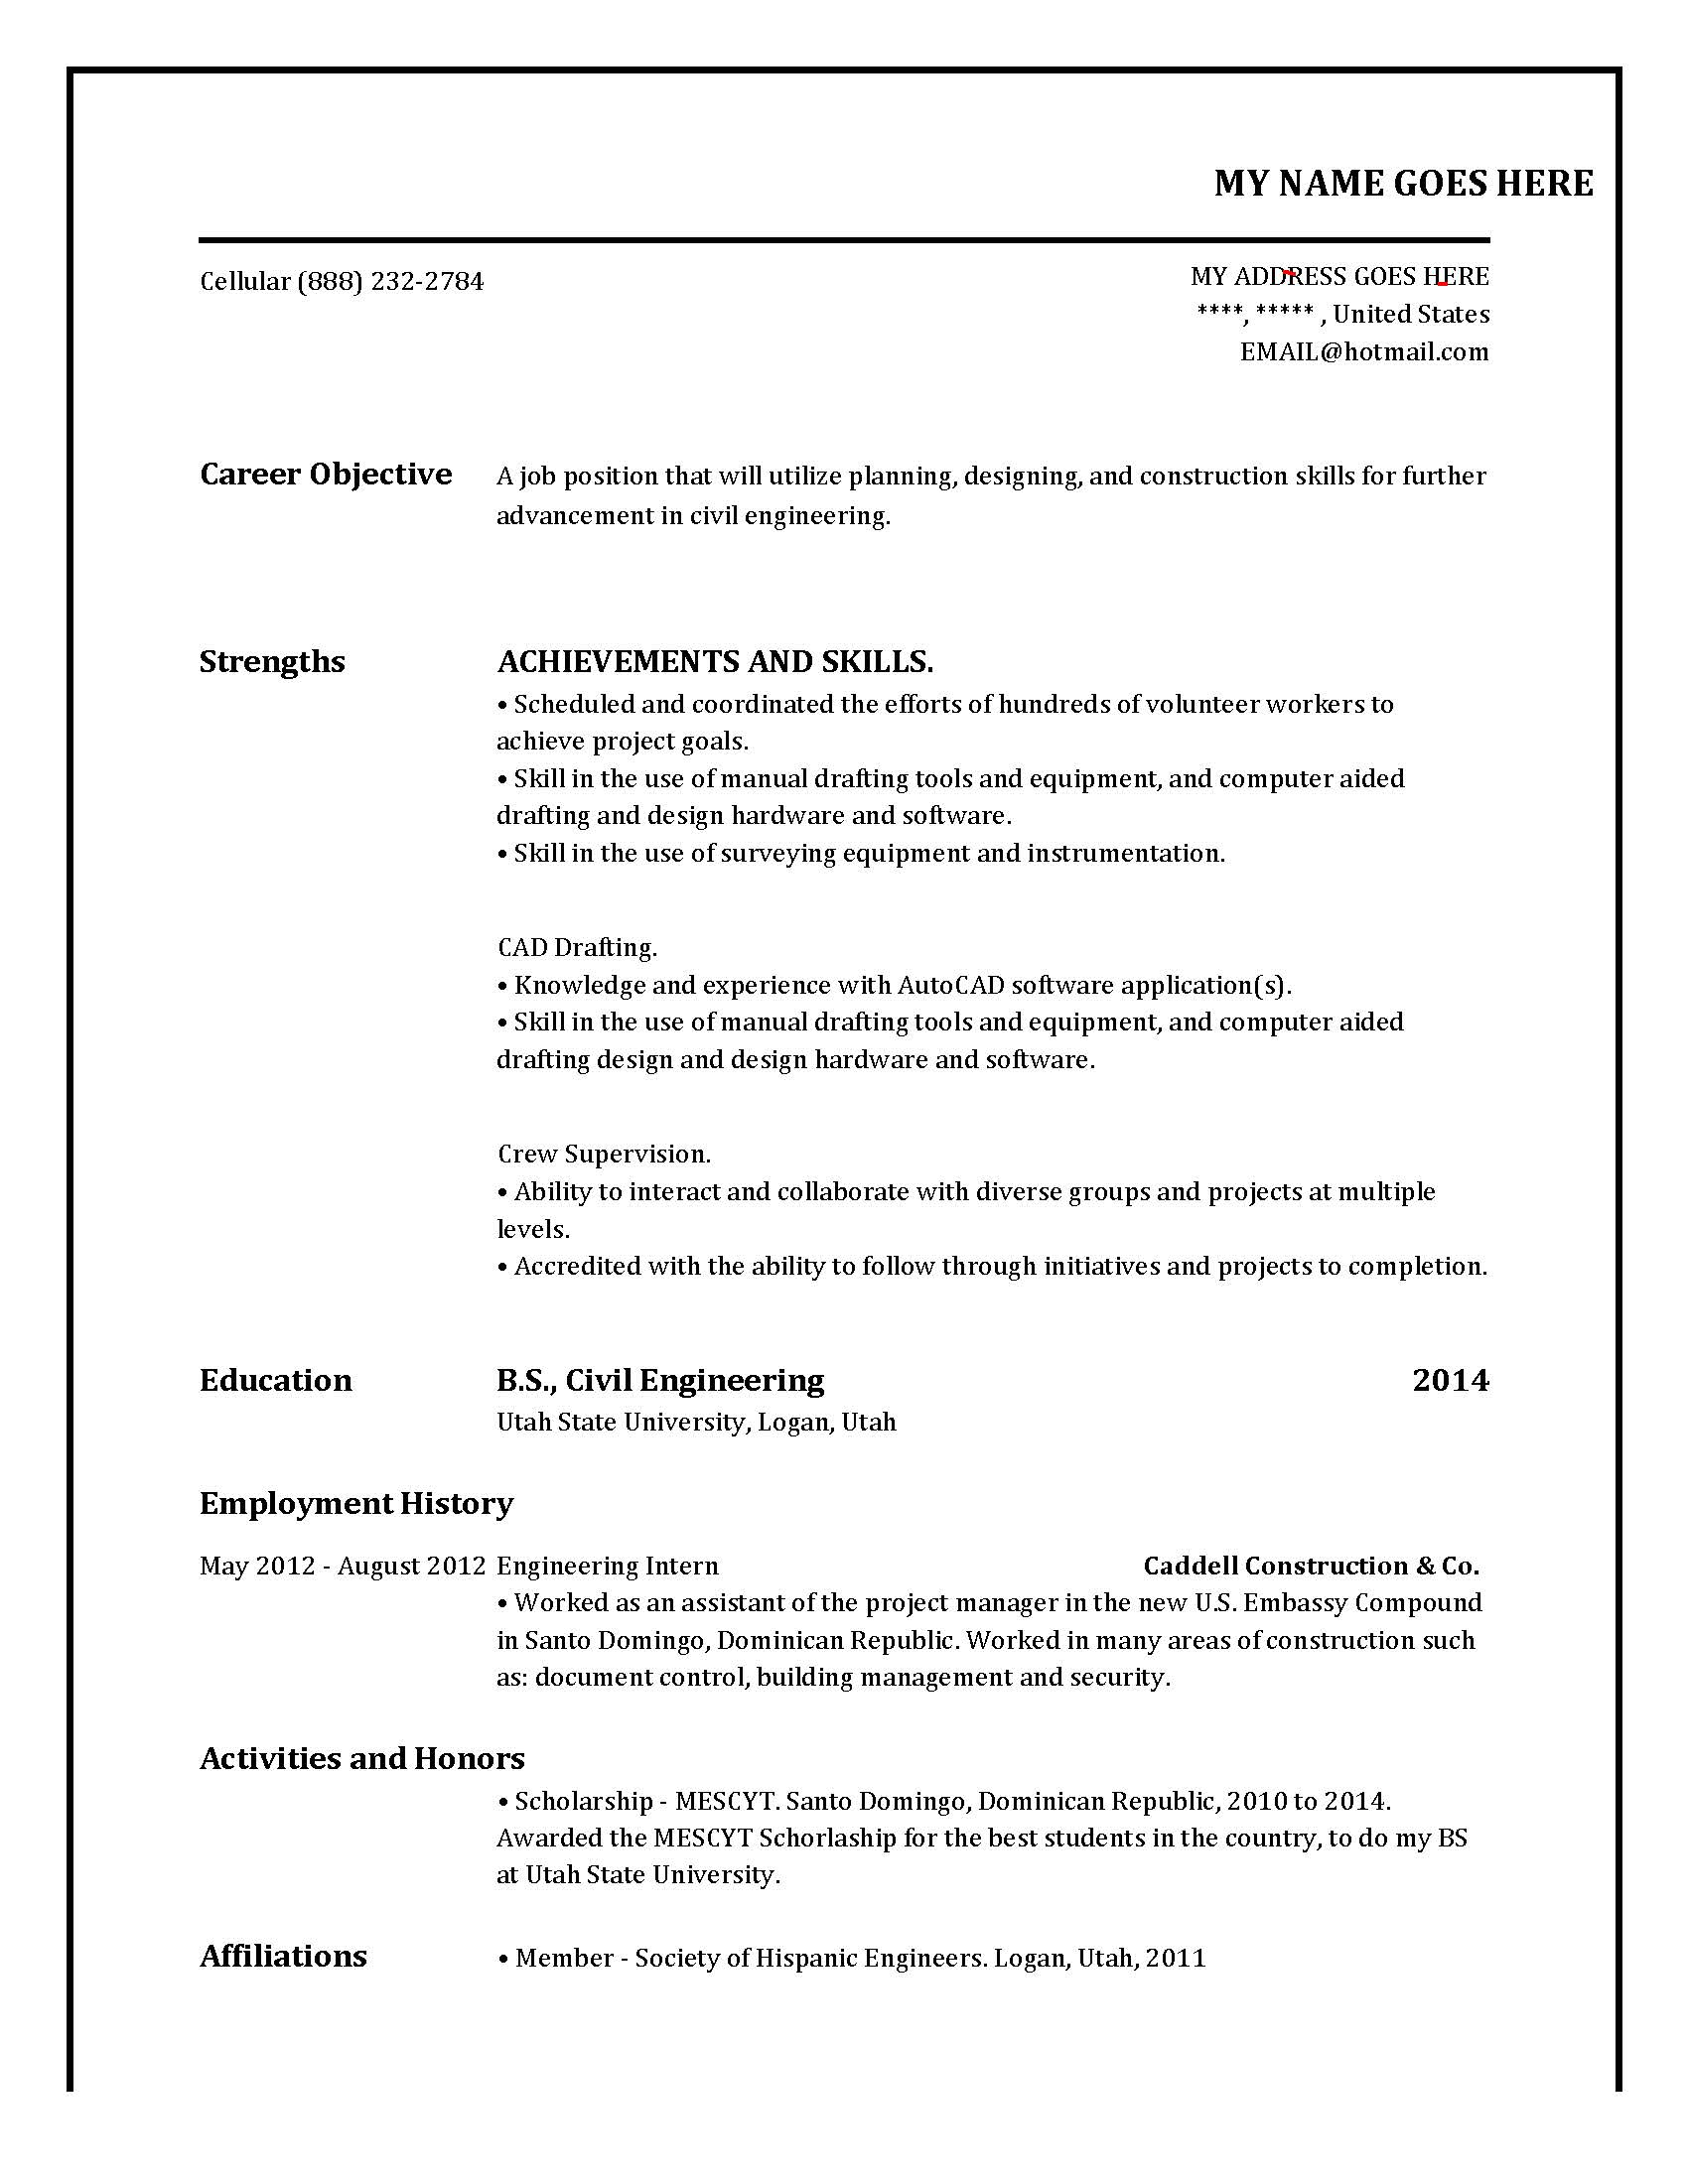 how to make my resume pdf format resume builder how to make my resume pdf format resume writing tips vaughn college to resume revef5si how